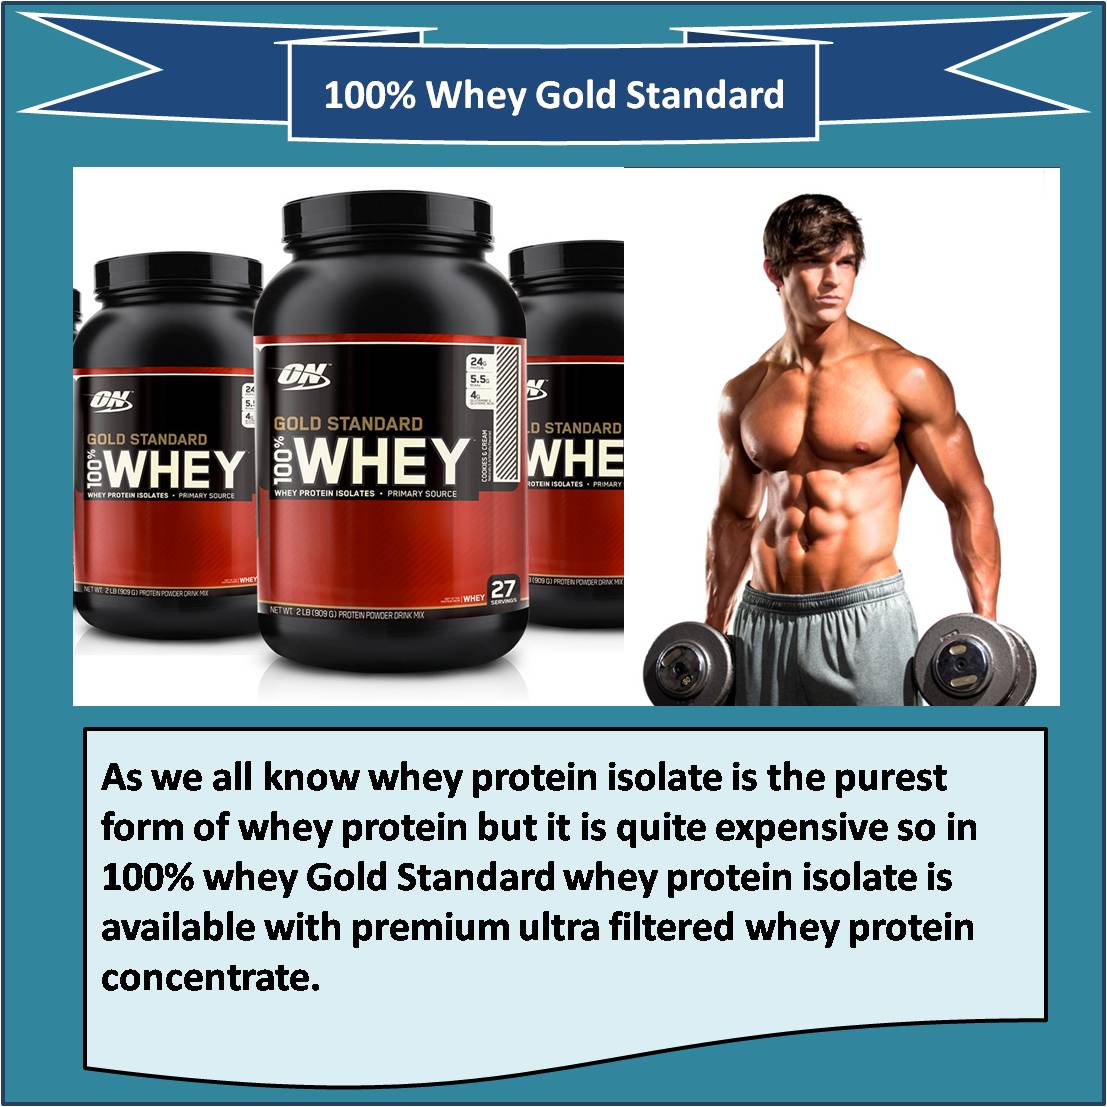 100 percent Whey Gold Standard